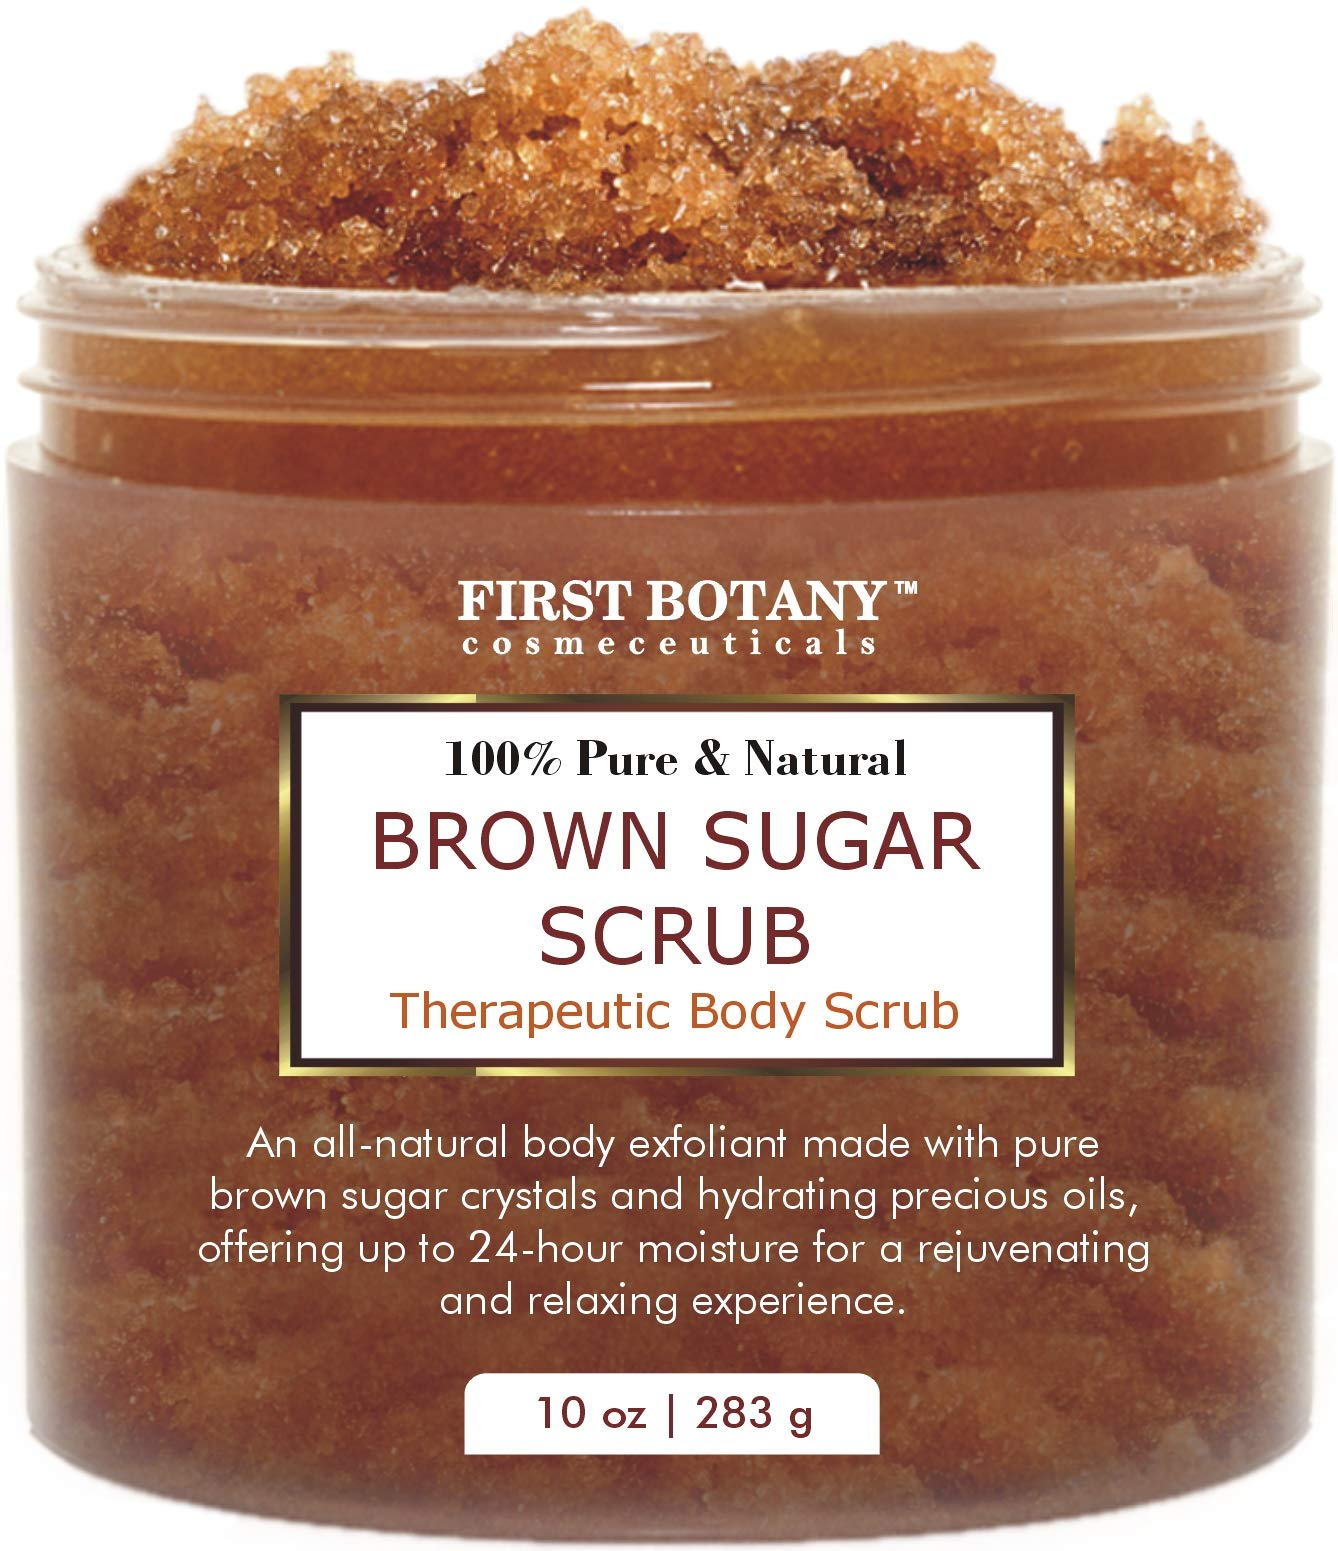 Brown Sugar Natural Body Scrub – 100% Natural Best for Acne, Cellulite Cream/Scrub and Stretch Mark treatment, Moisturizer, Face Scrub 10 oz